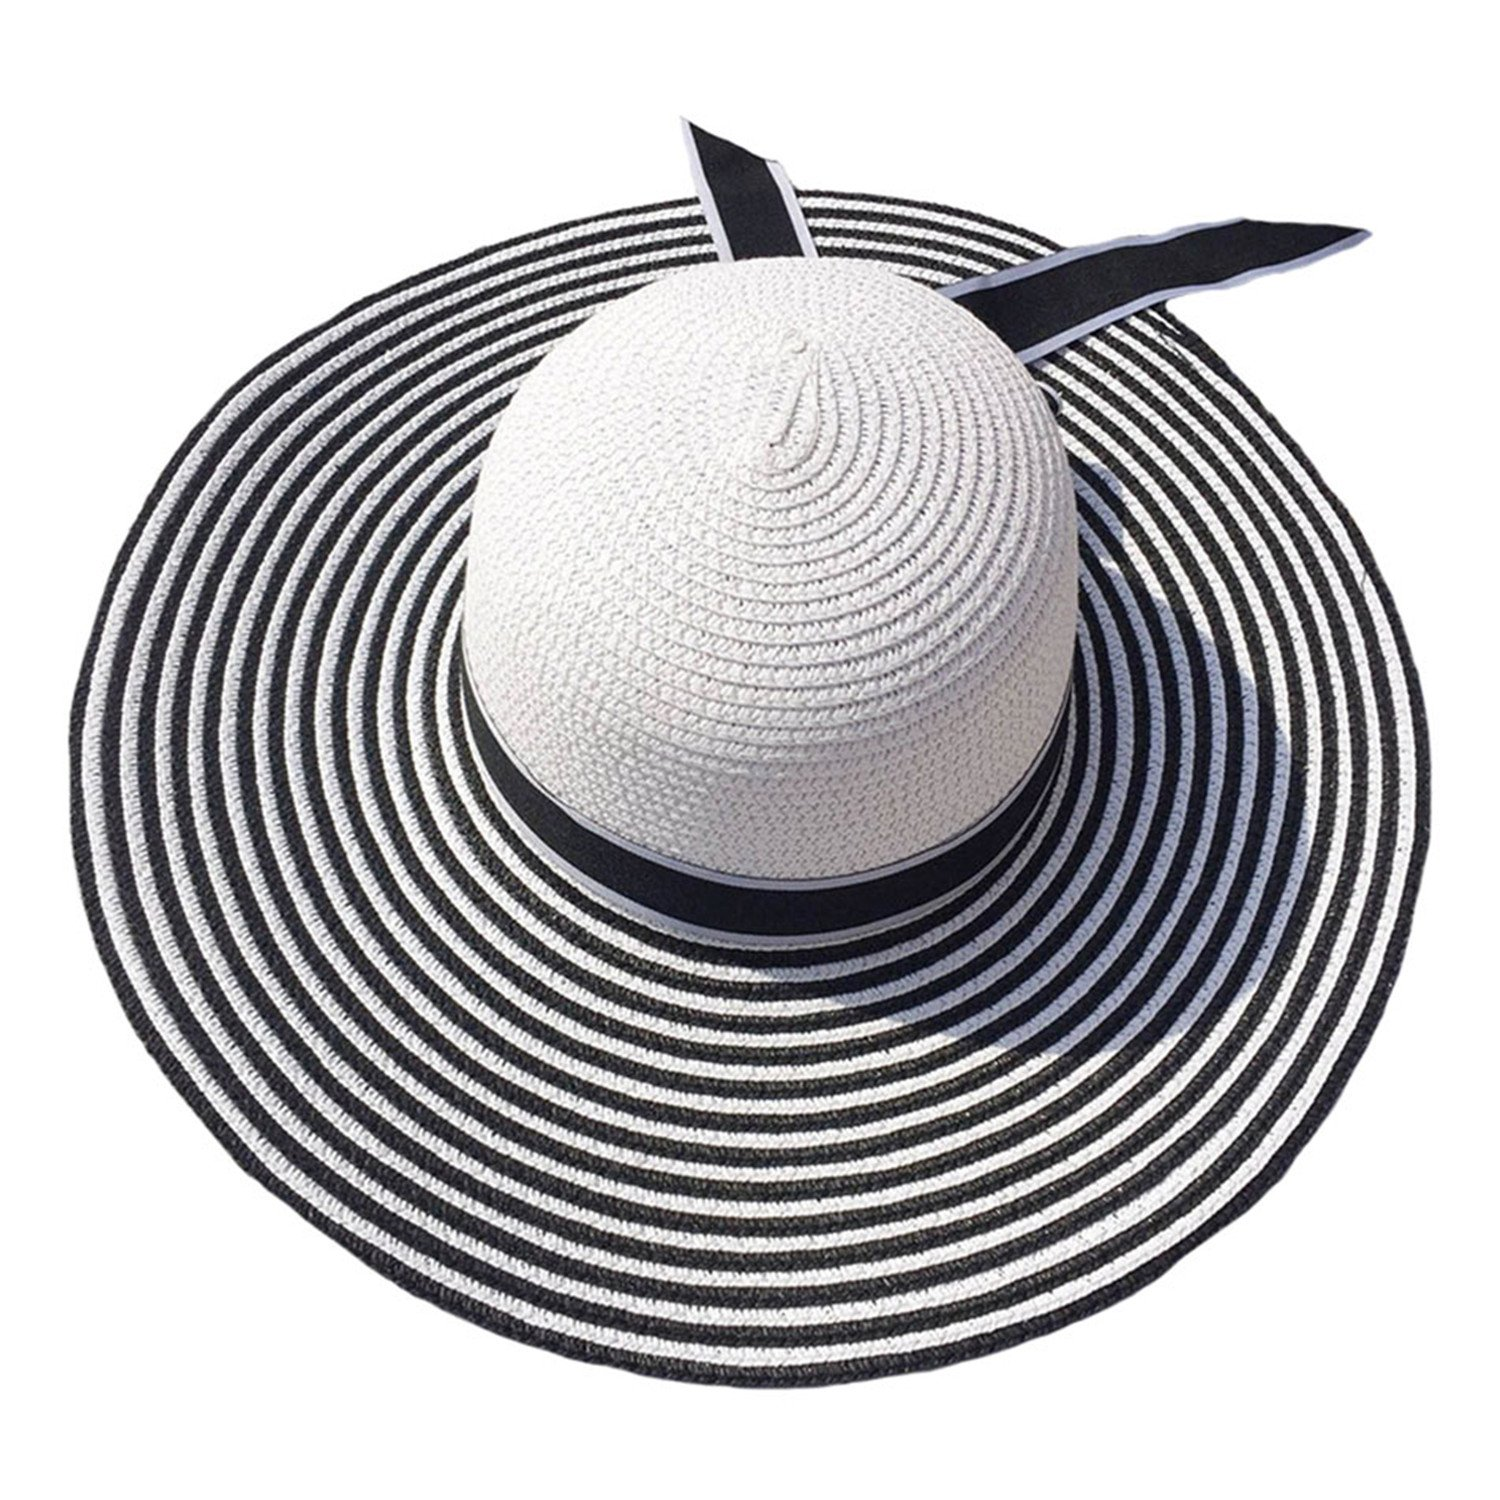 13ca54f53a6c8e Wide Brim Sun Hat Straw Women Summer Striped Bowknot Female Beach Hat at  Amazon Women's Clothing store: